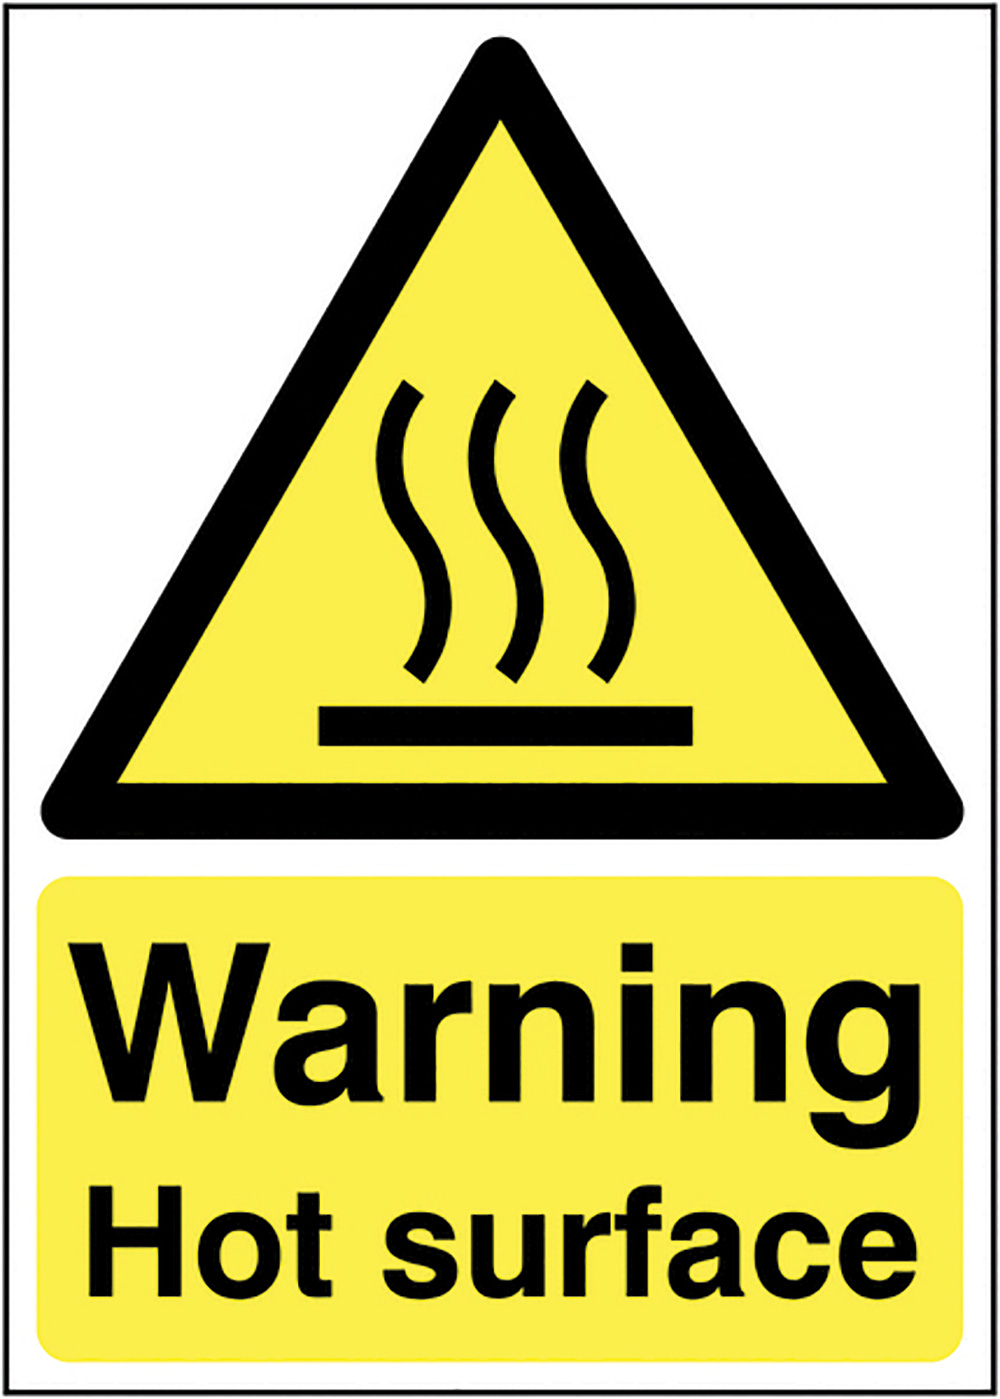 Warning Hot Surface 210x148mm 1.2mm Rigid Plastic Safety Sign